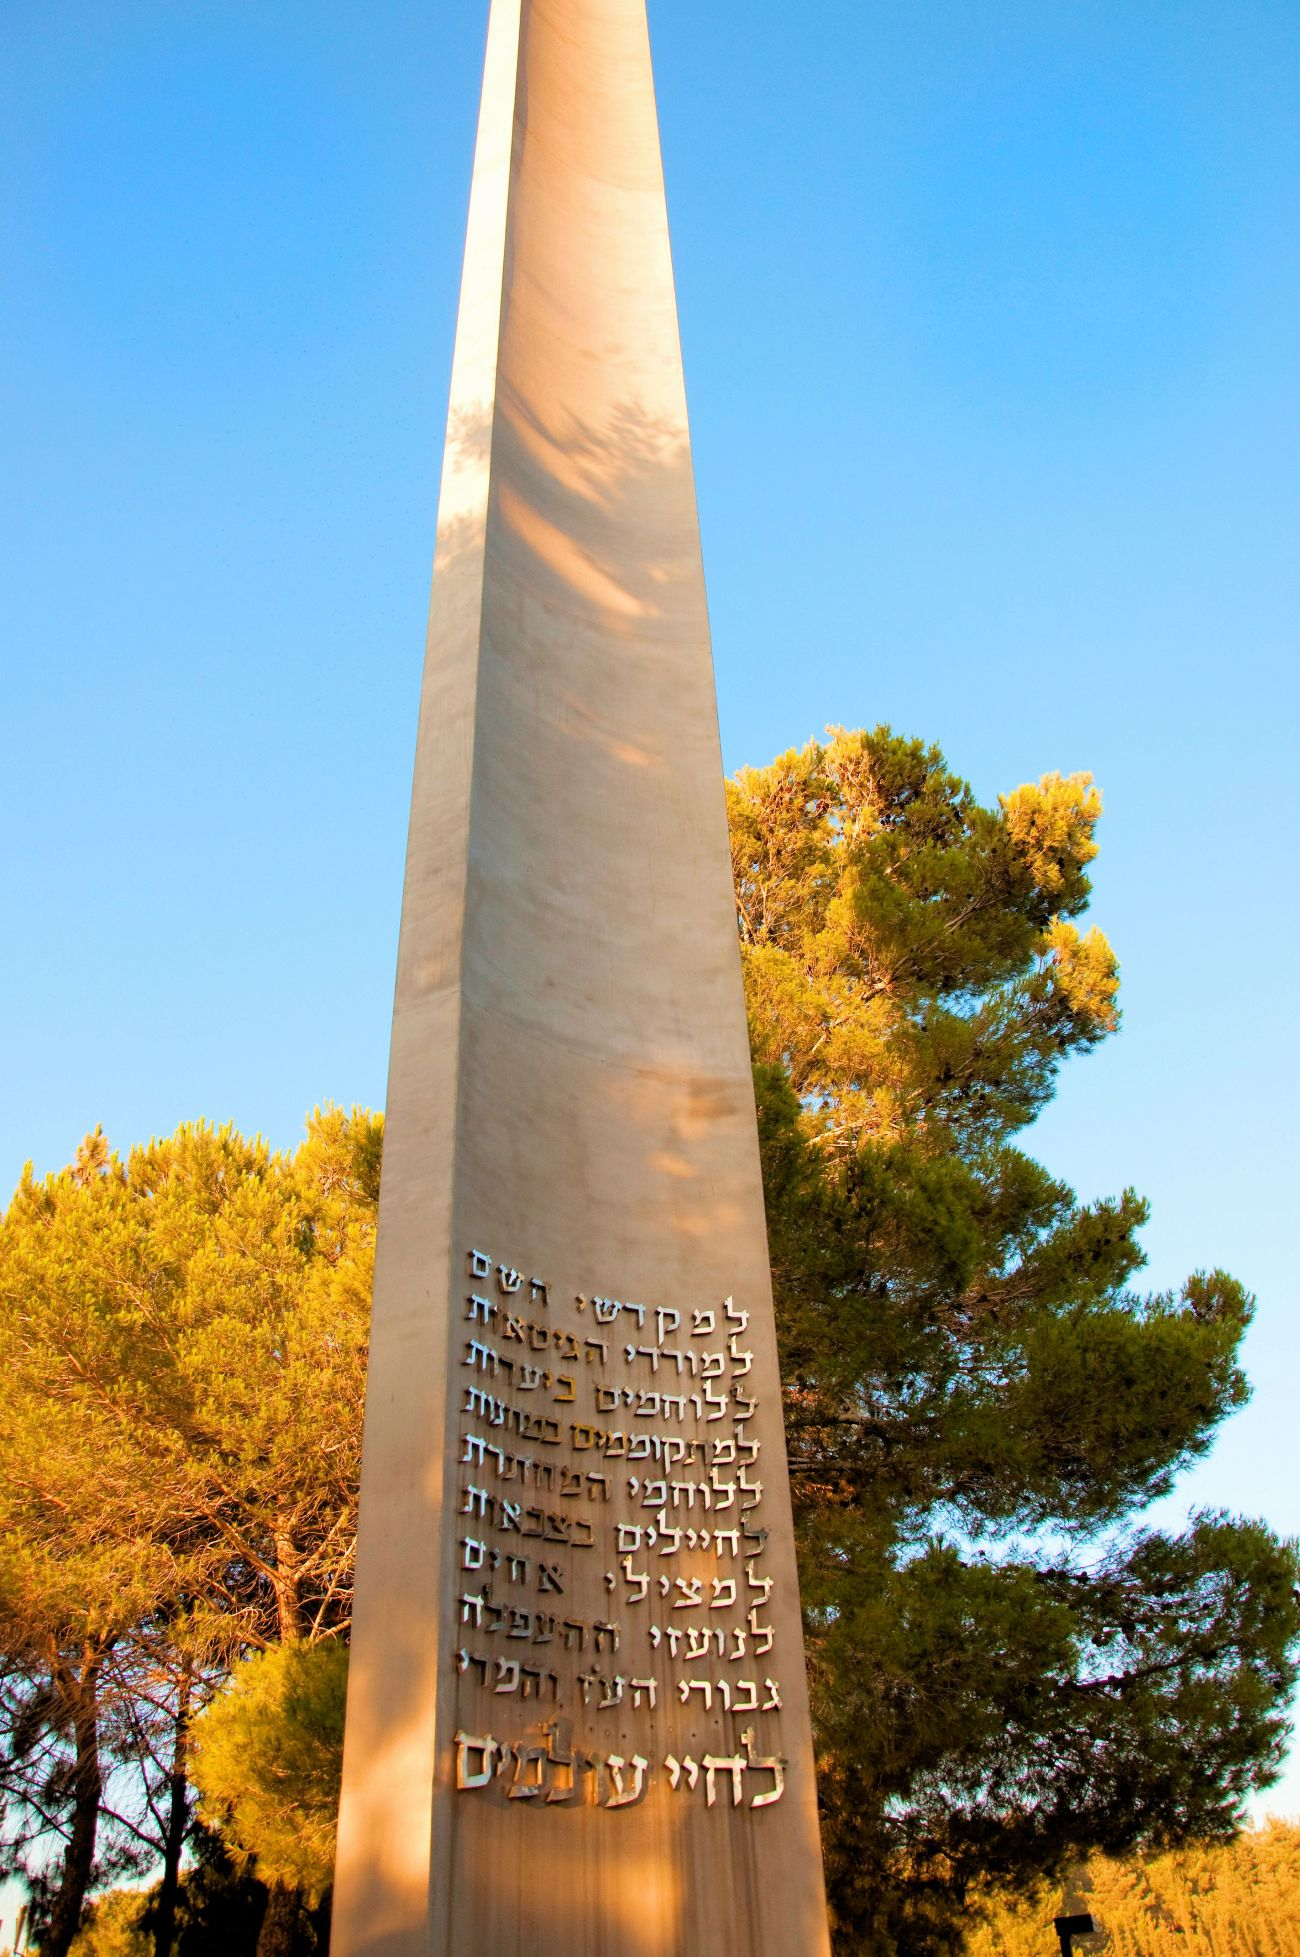 Yad_Vashem_Tribute_to_the_Righteous_Among_the_Nations_(3756293059)_t